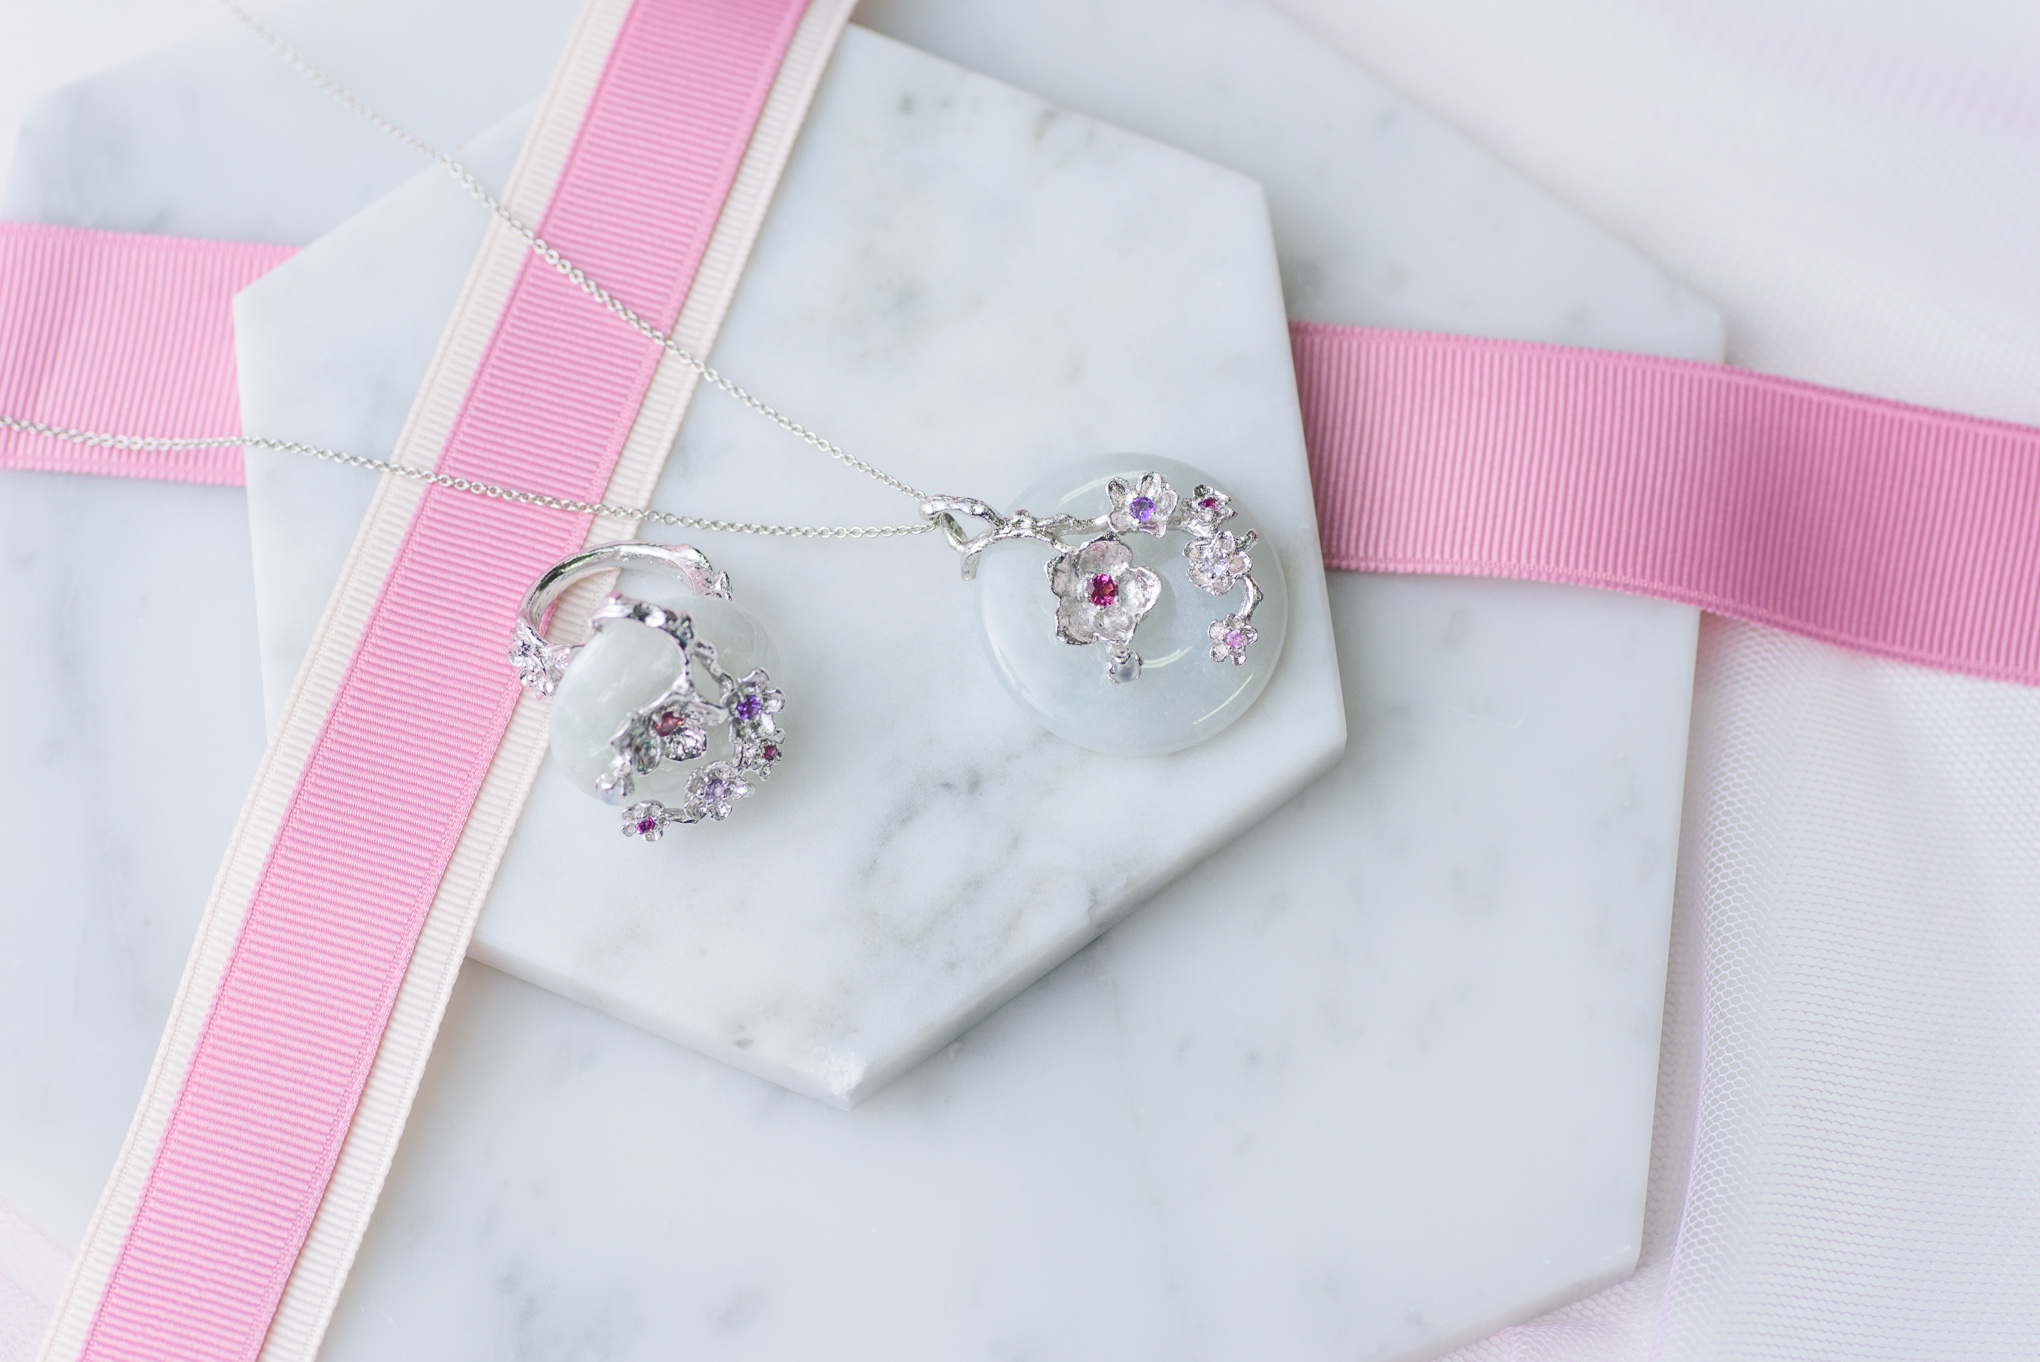 Cherry Blossom Branch Ring and Cherry Blossom Branch Necklace